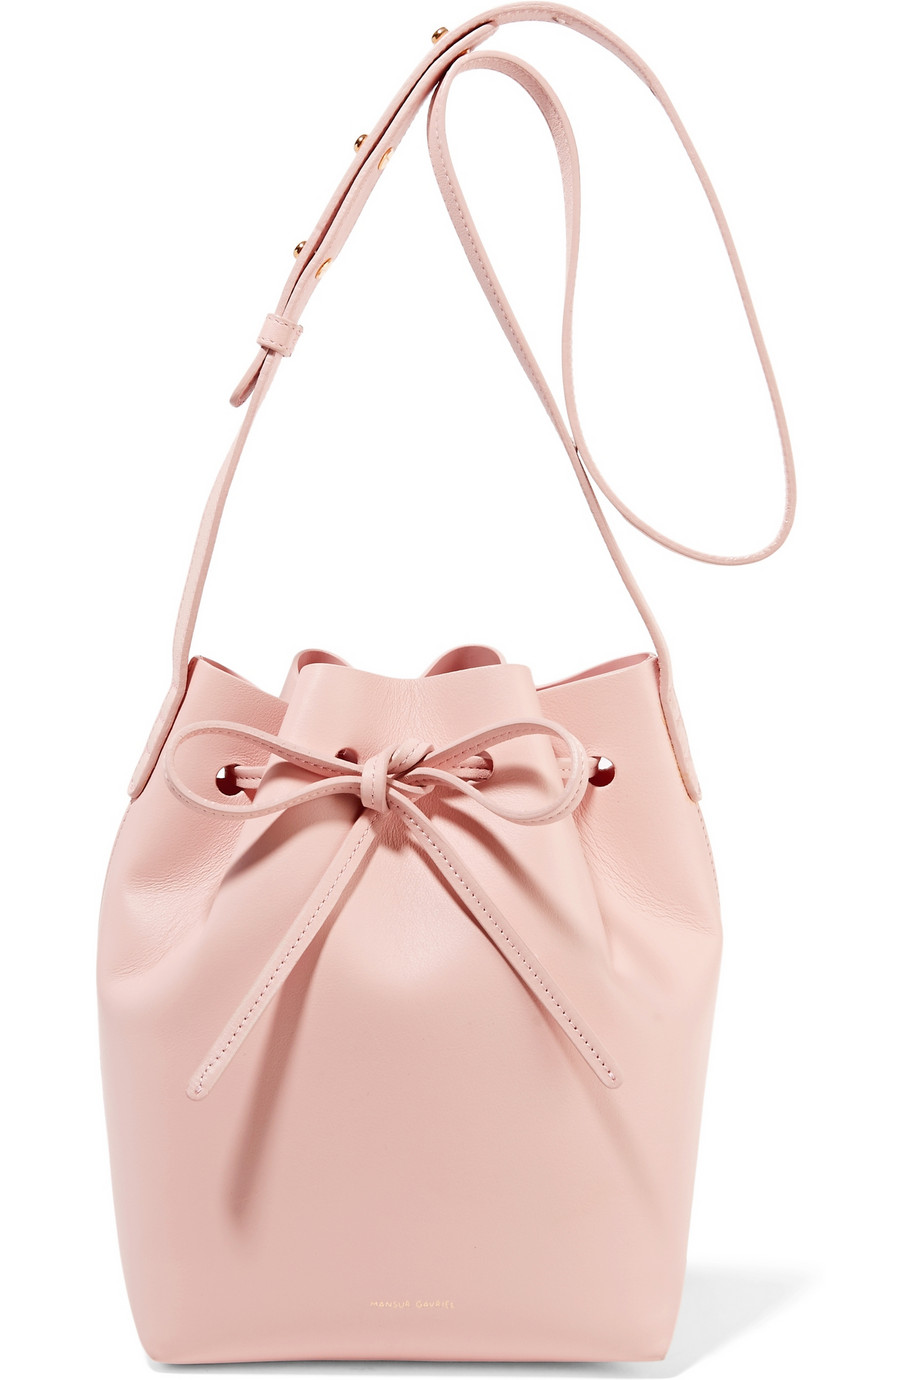 Mansur Gavriel mini bucket blush